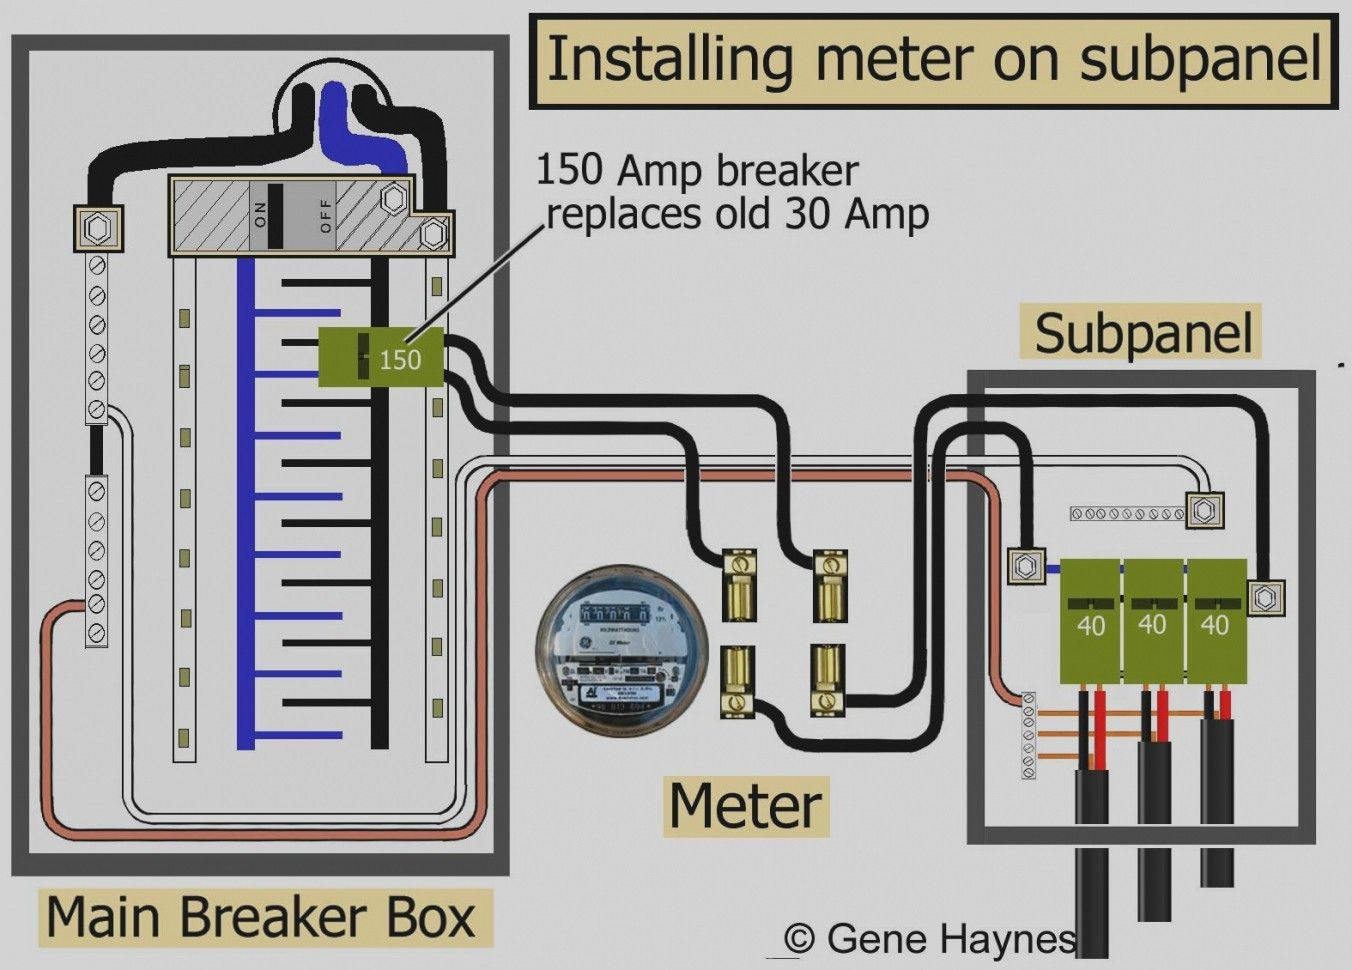 50 Amp Sub Panel Wiring Diagram How to Wire A Subpanel Diagram in 2020    Home electrical wiring, Breaker box, Electrical wiringPinterest